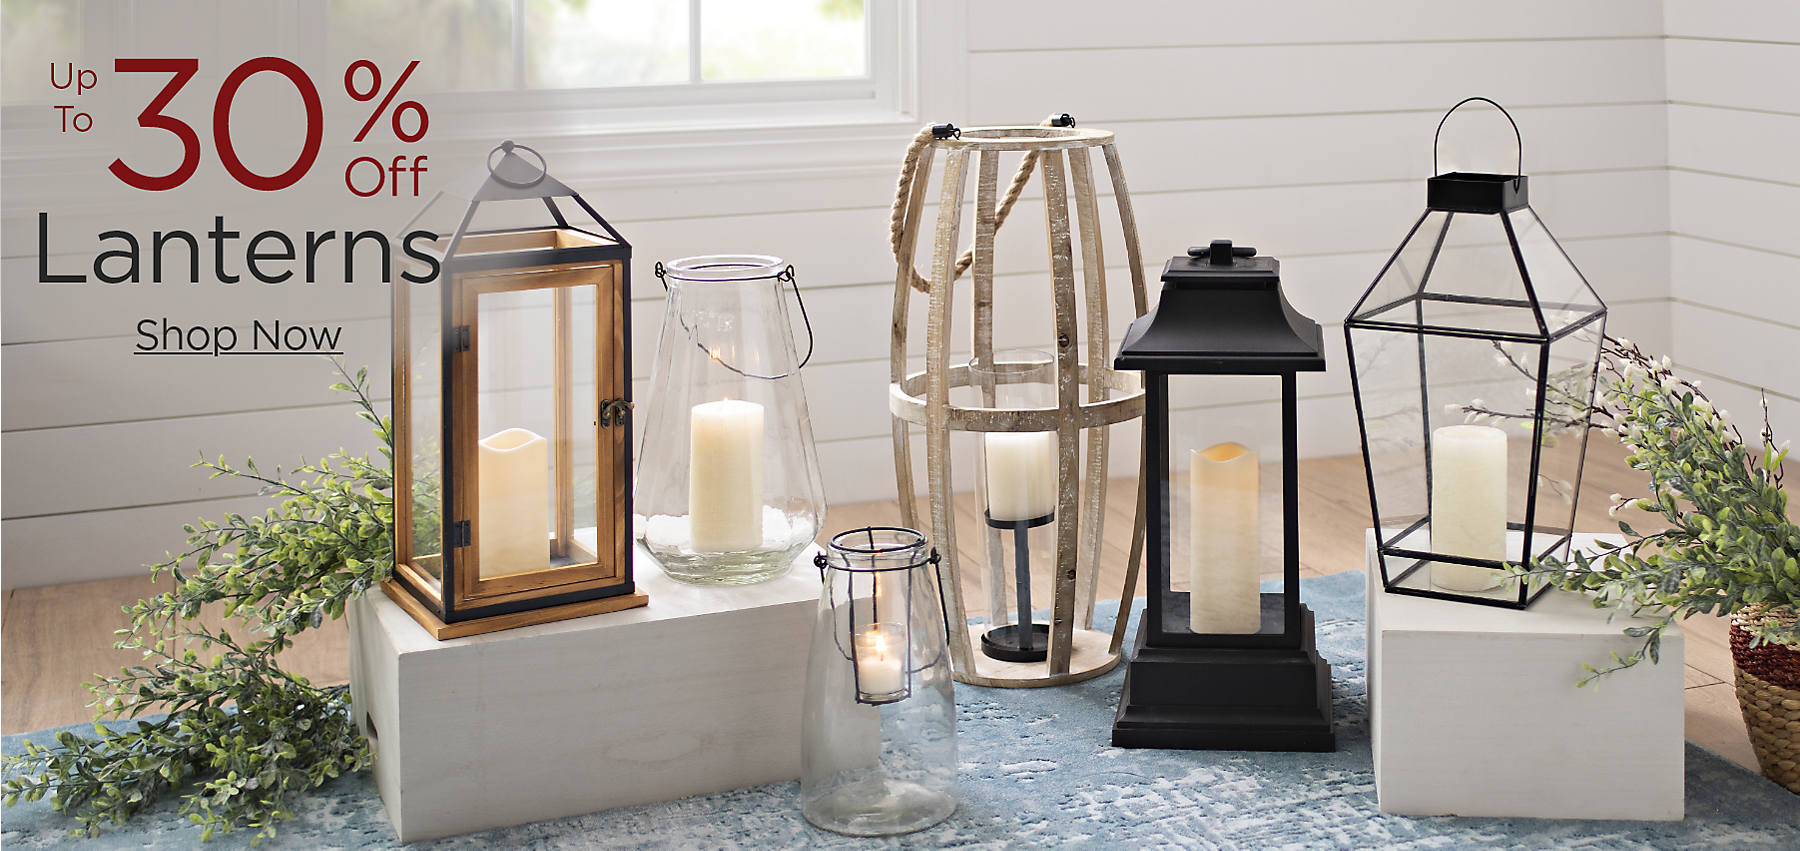 Up to 30% Off Lanterns Shop Now